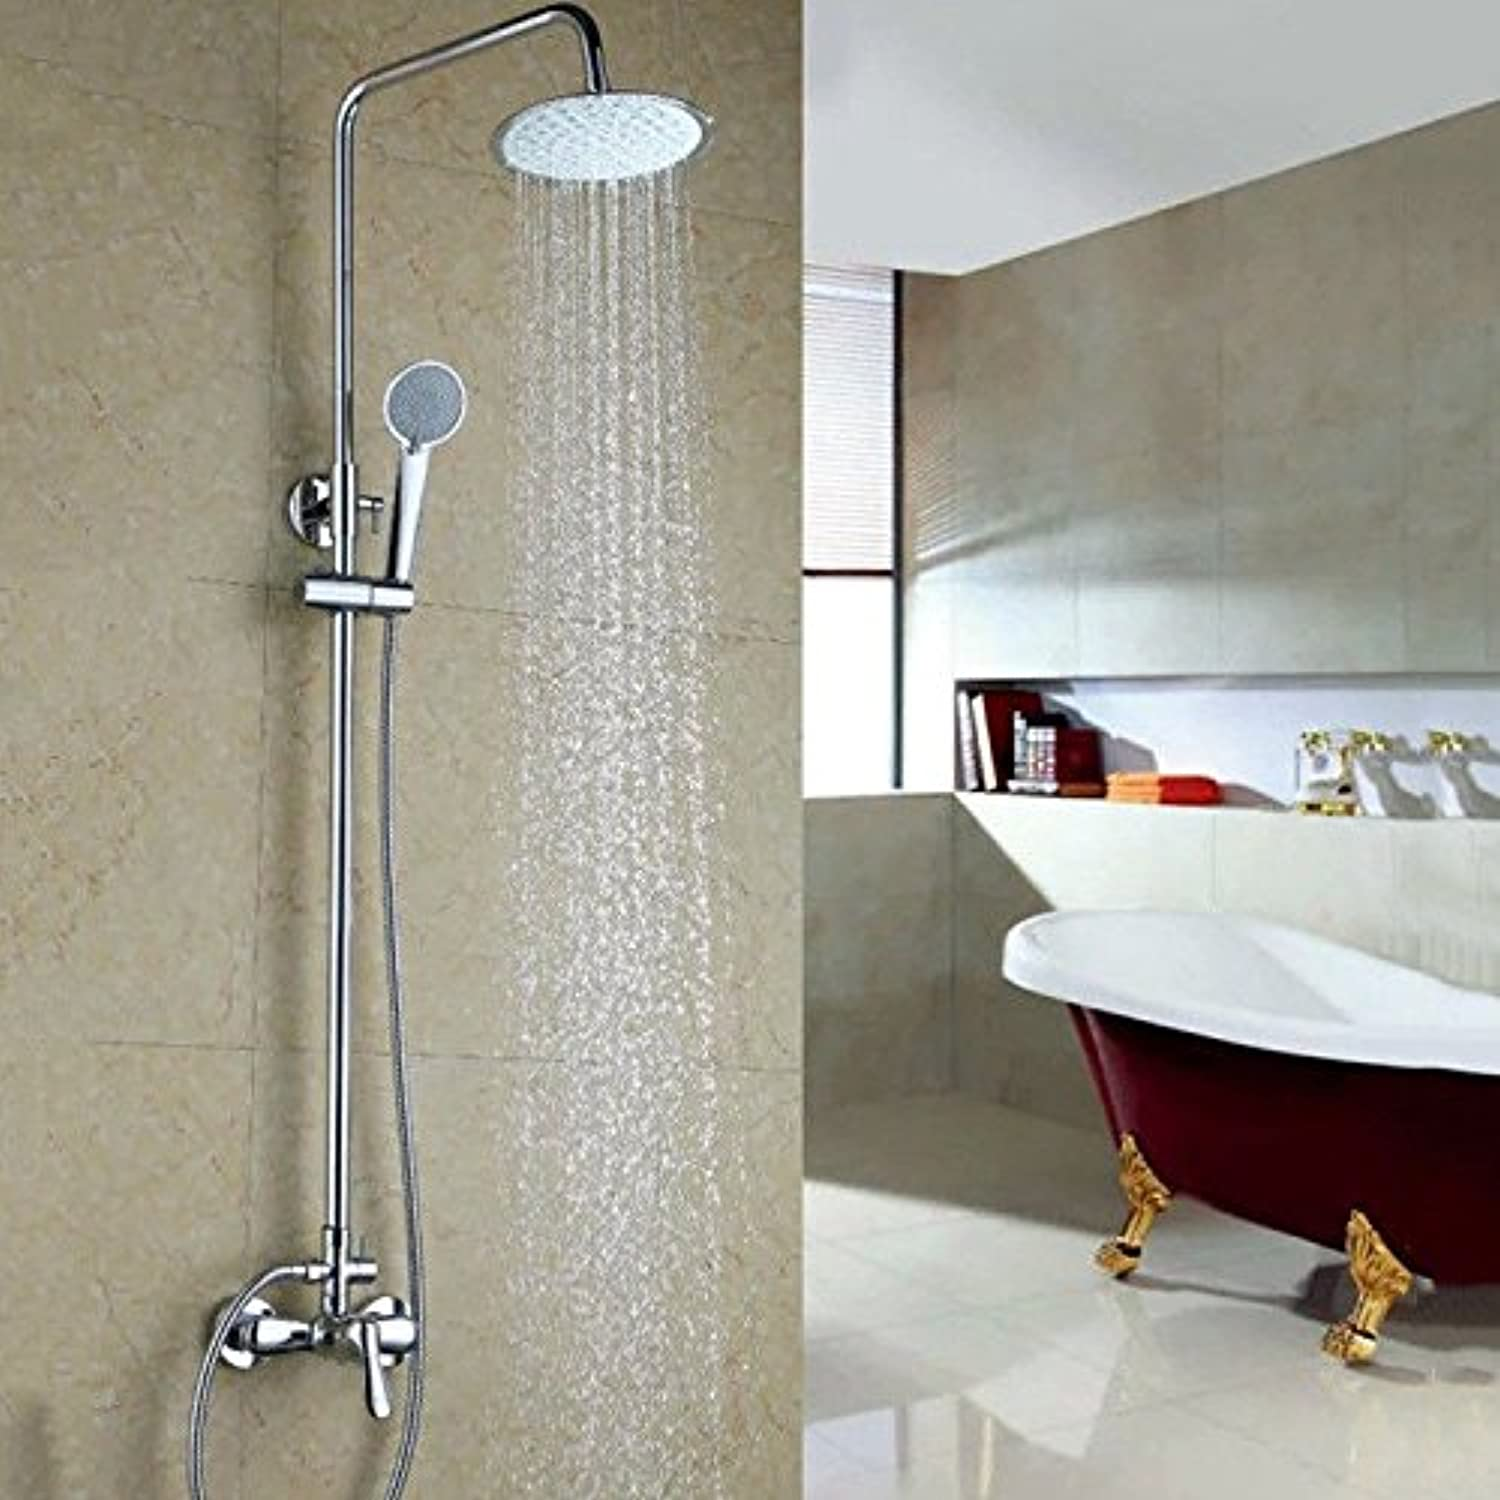 Lalaky Taps Faucet Kitchen Mixer Sink Waterfall Bathroom Mixer Basin Mixer Tap for Kitchen Bathroom and Washroom All Copper Hot and Cold Pressurization Can Be Raised and Lowered